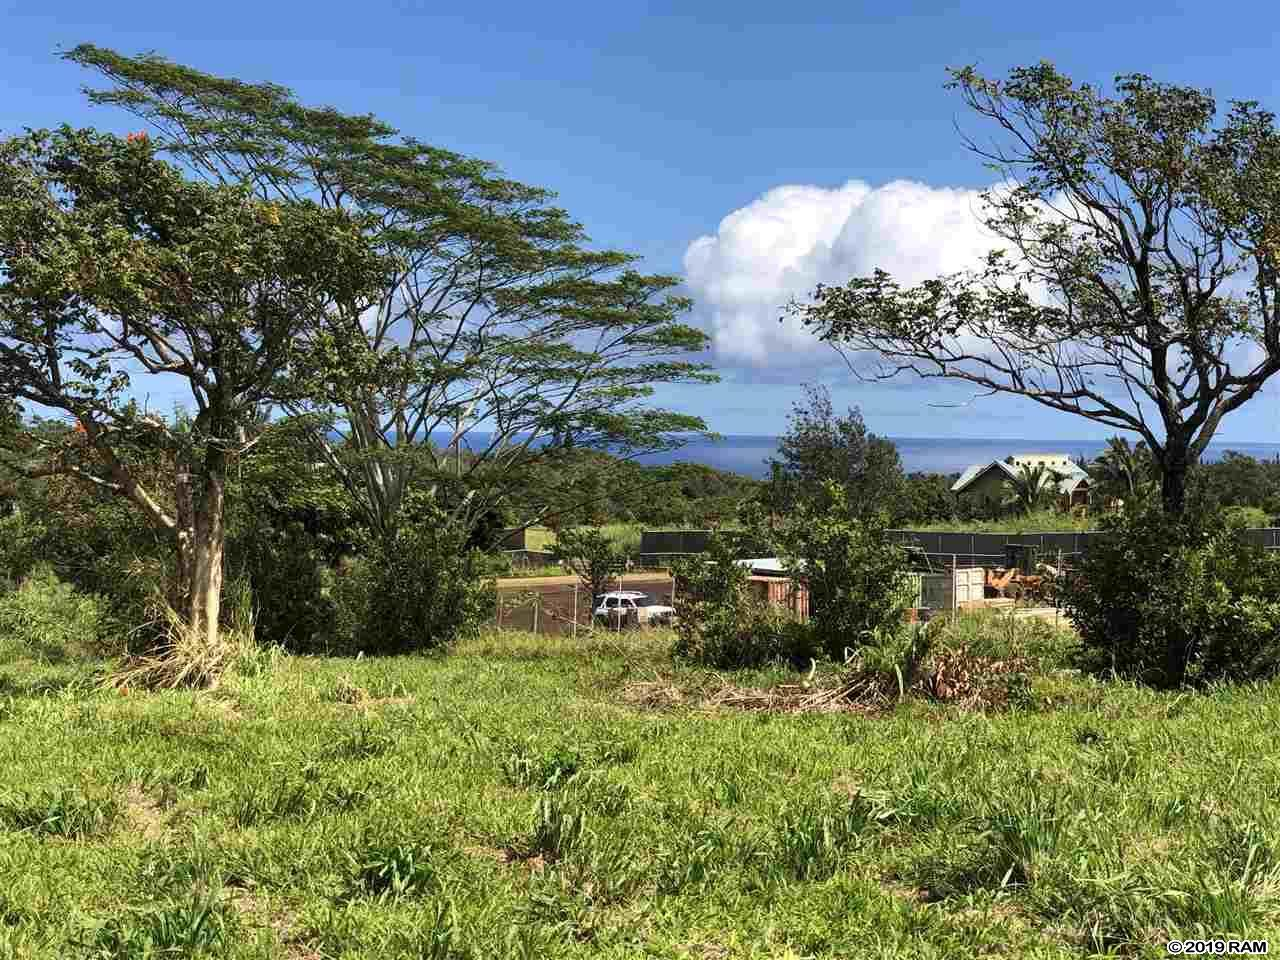 653 Kauhikoa Rd - Photo 1